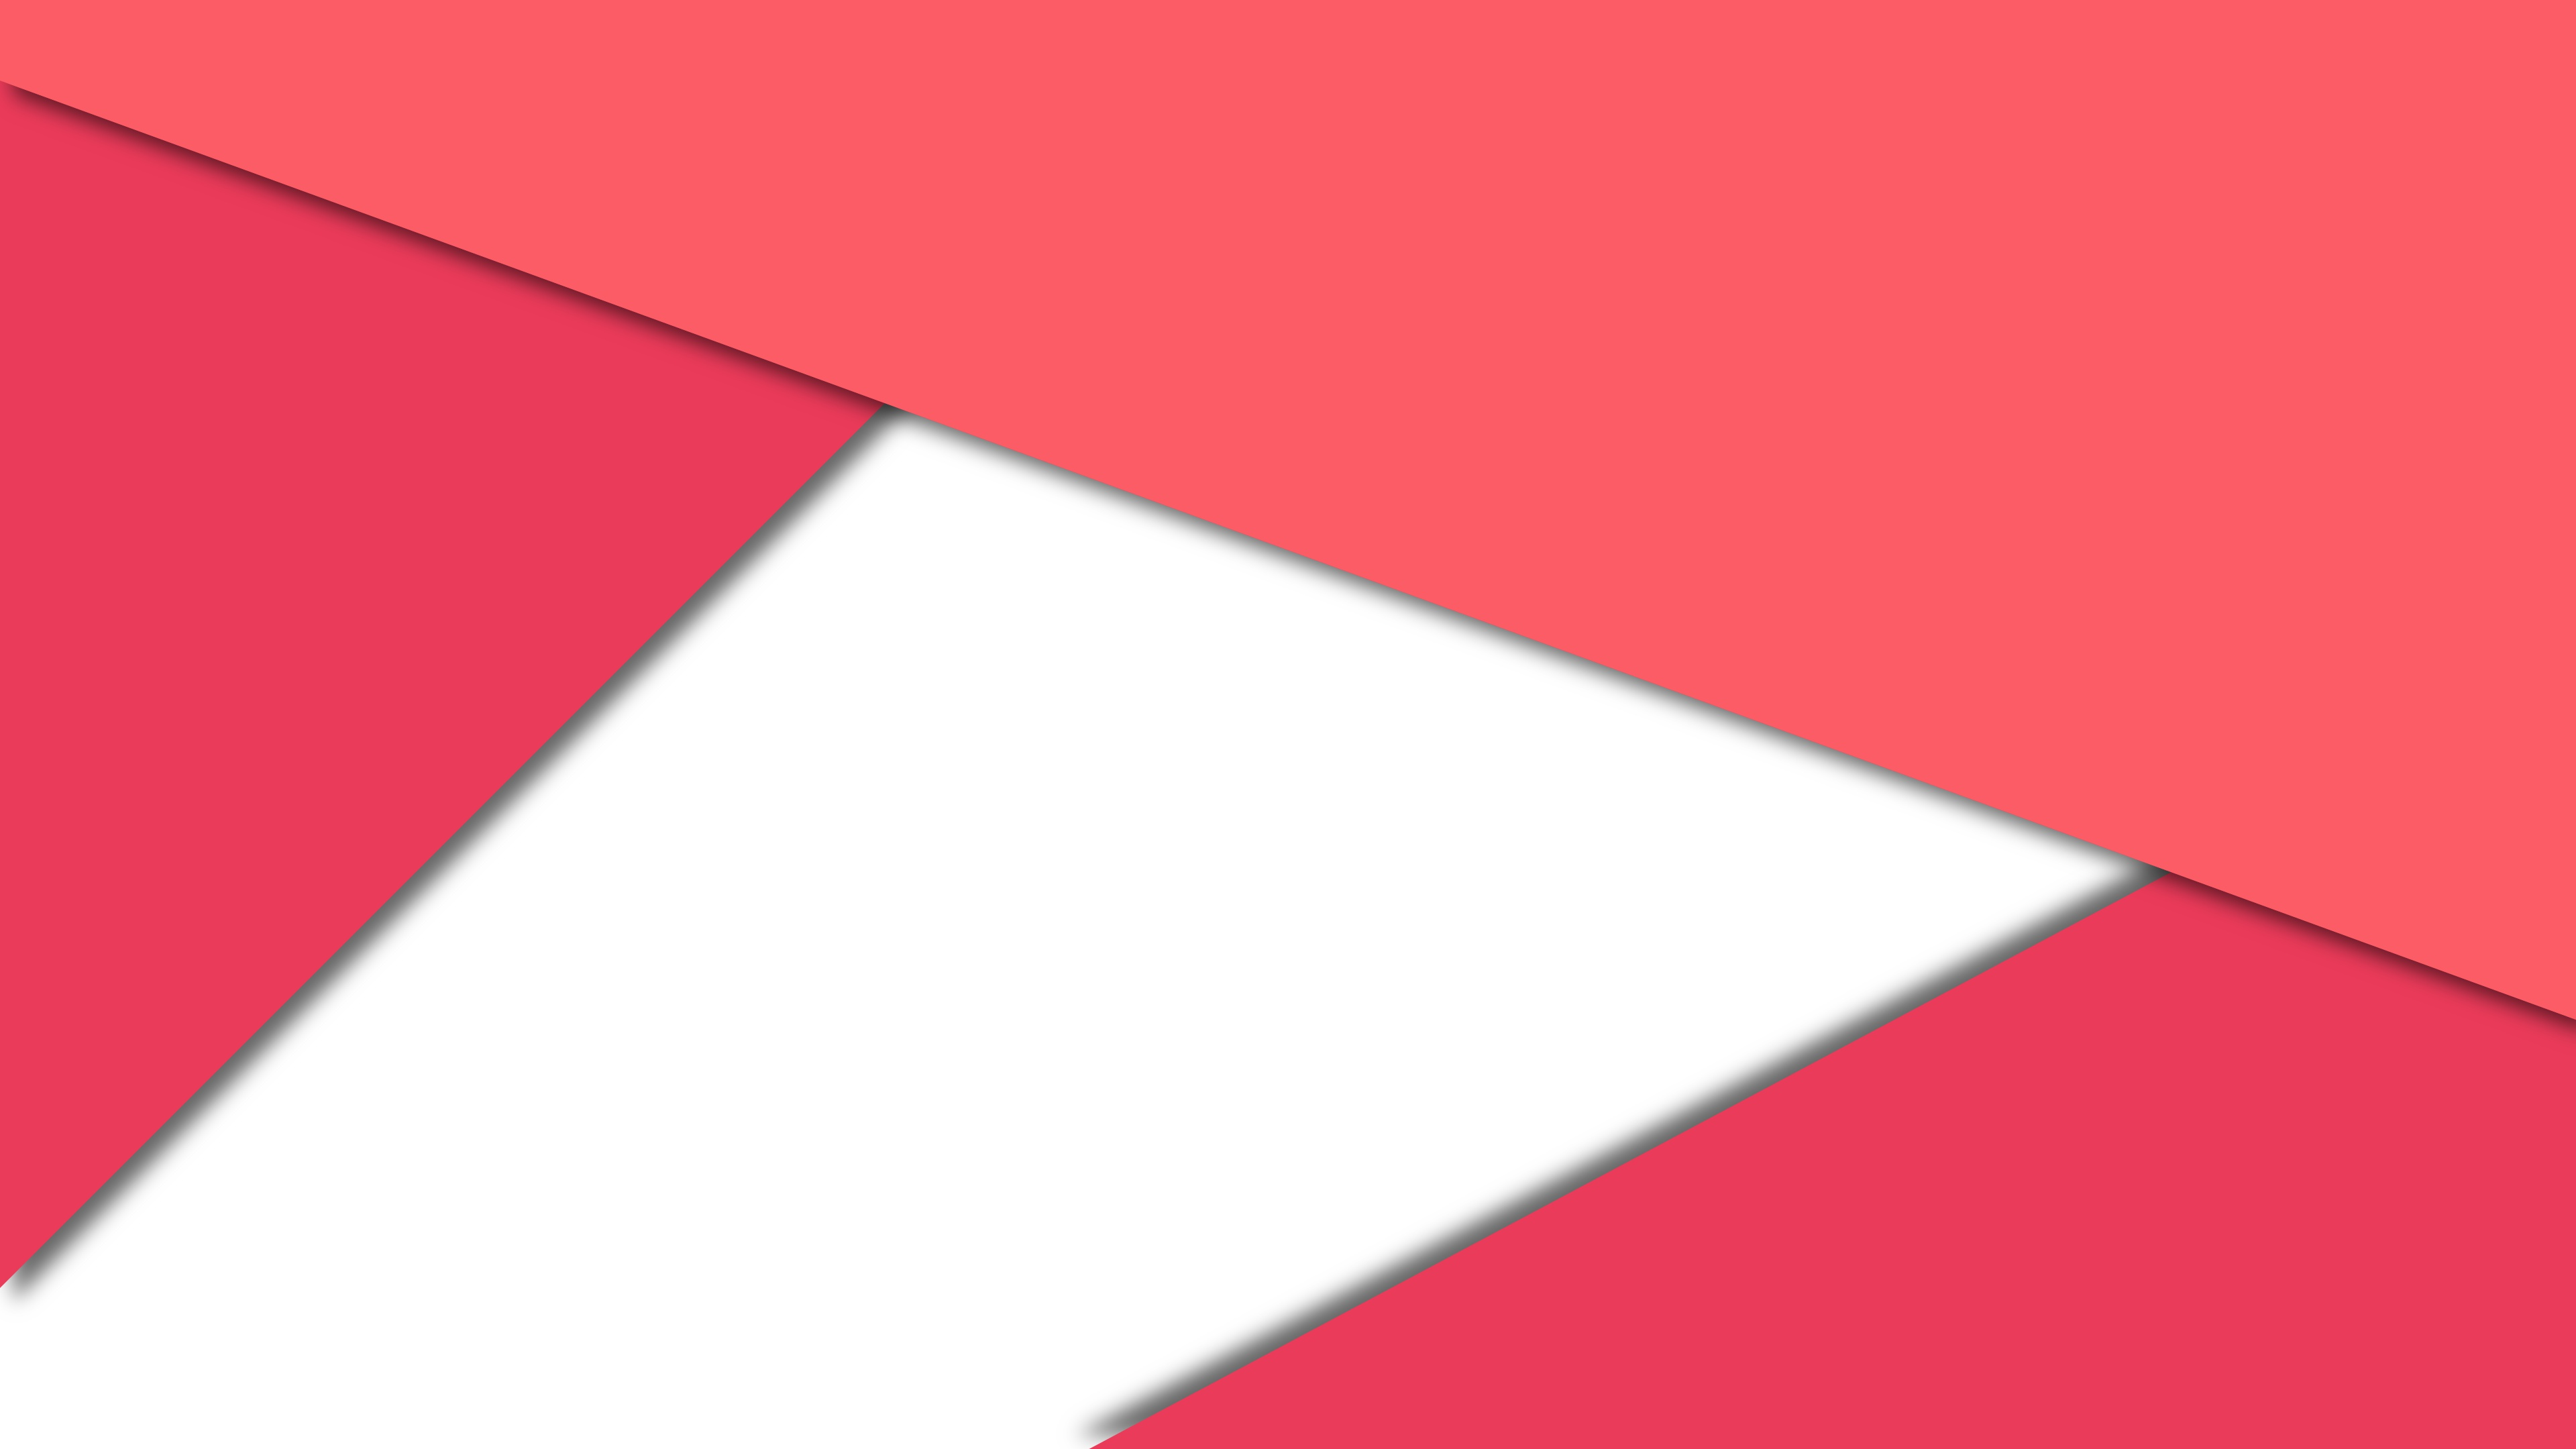 Red White Material Design 4k Hd Abstract 4k Wallpapers